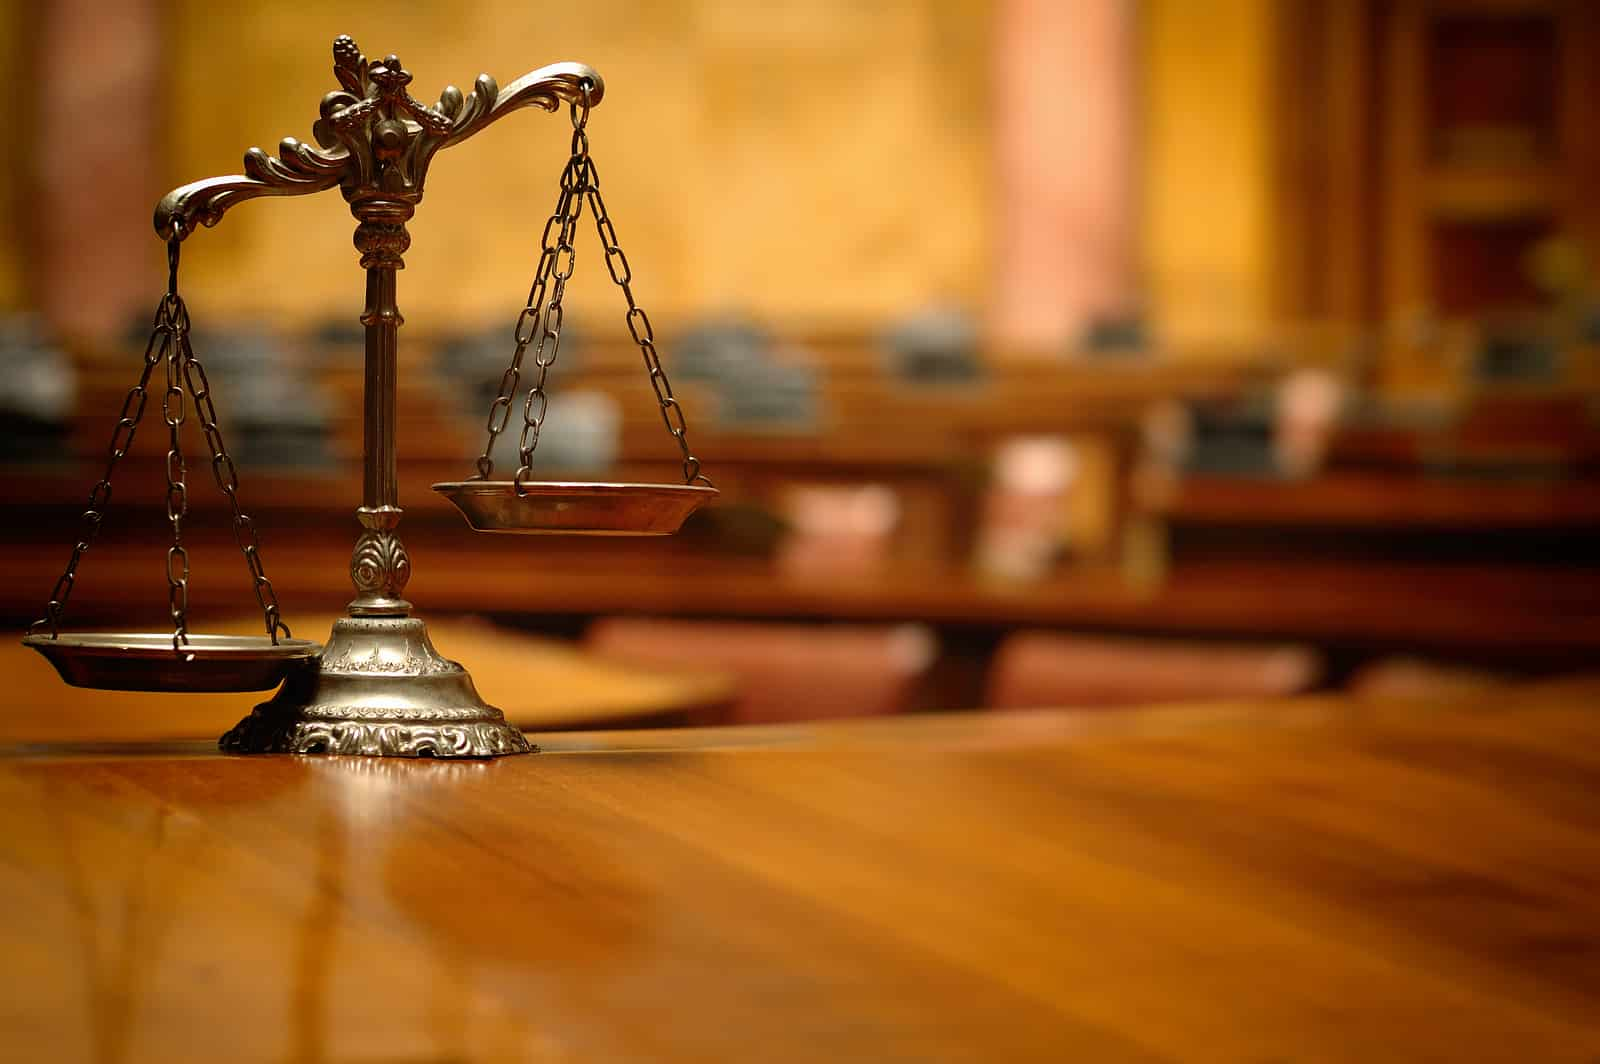 Trafficade to Pay Over $80,000 to Settle EEOC Suit